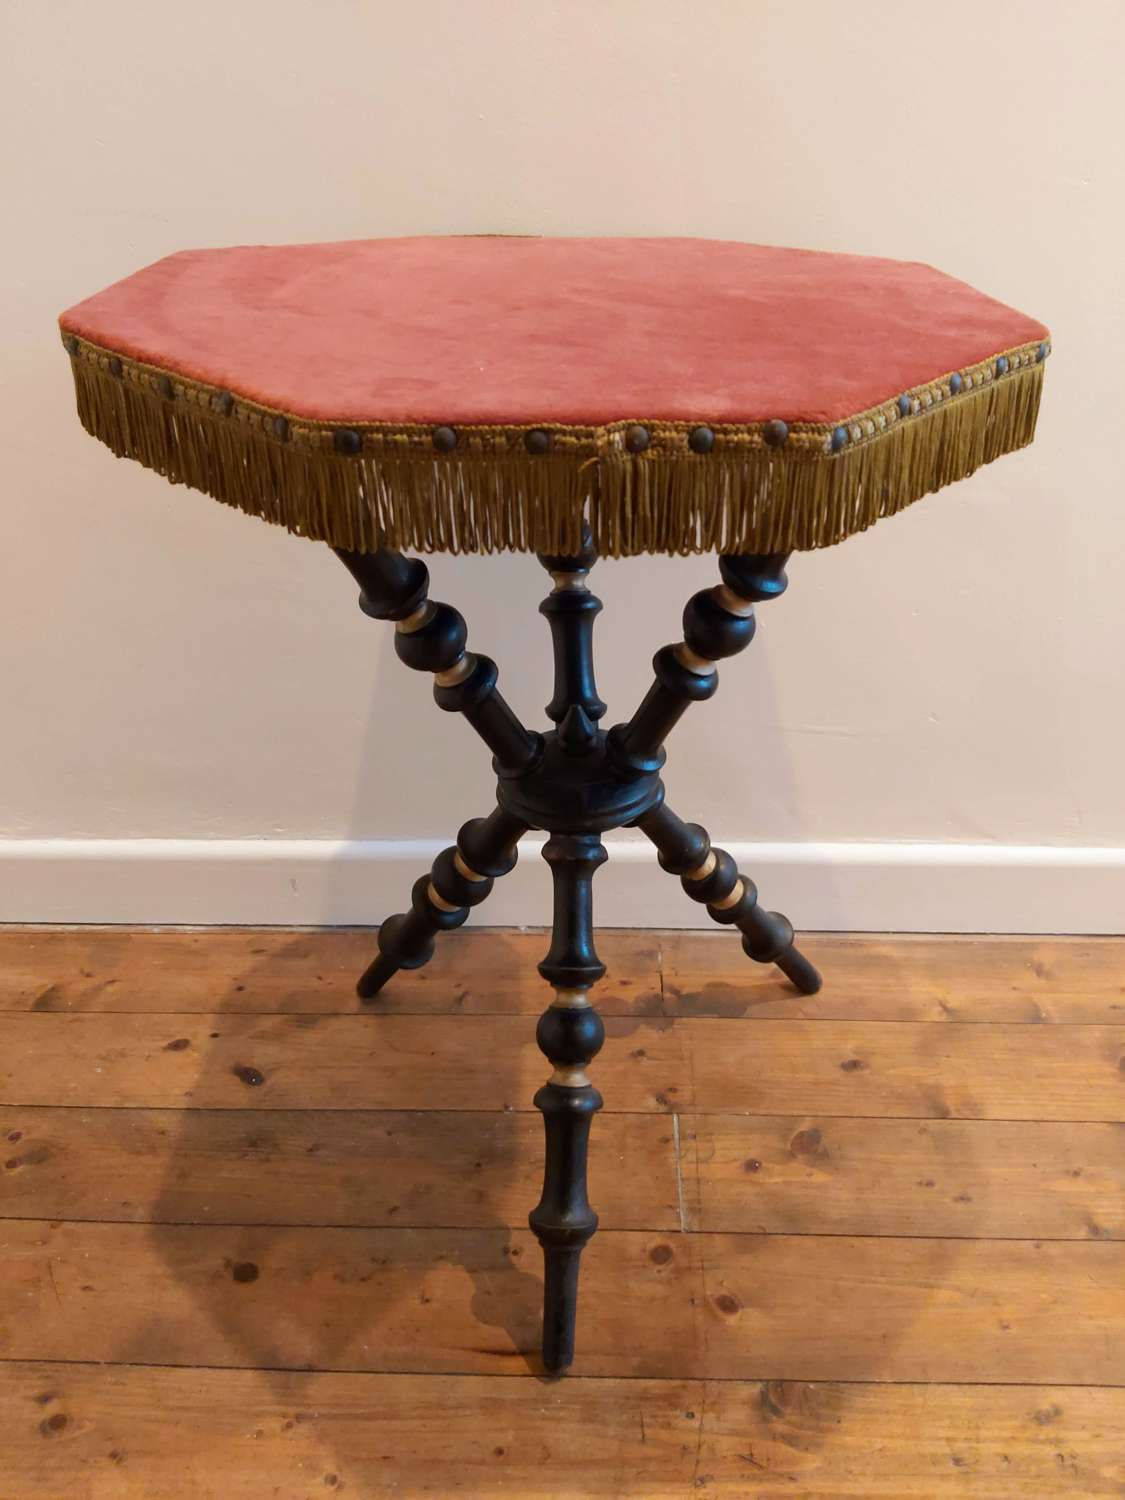 19th century Gypsy table